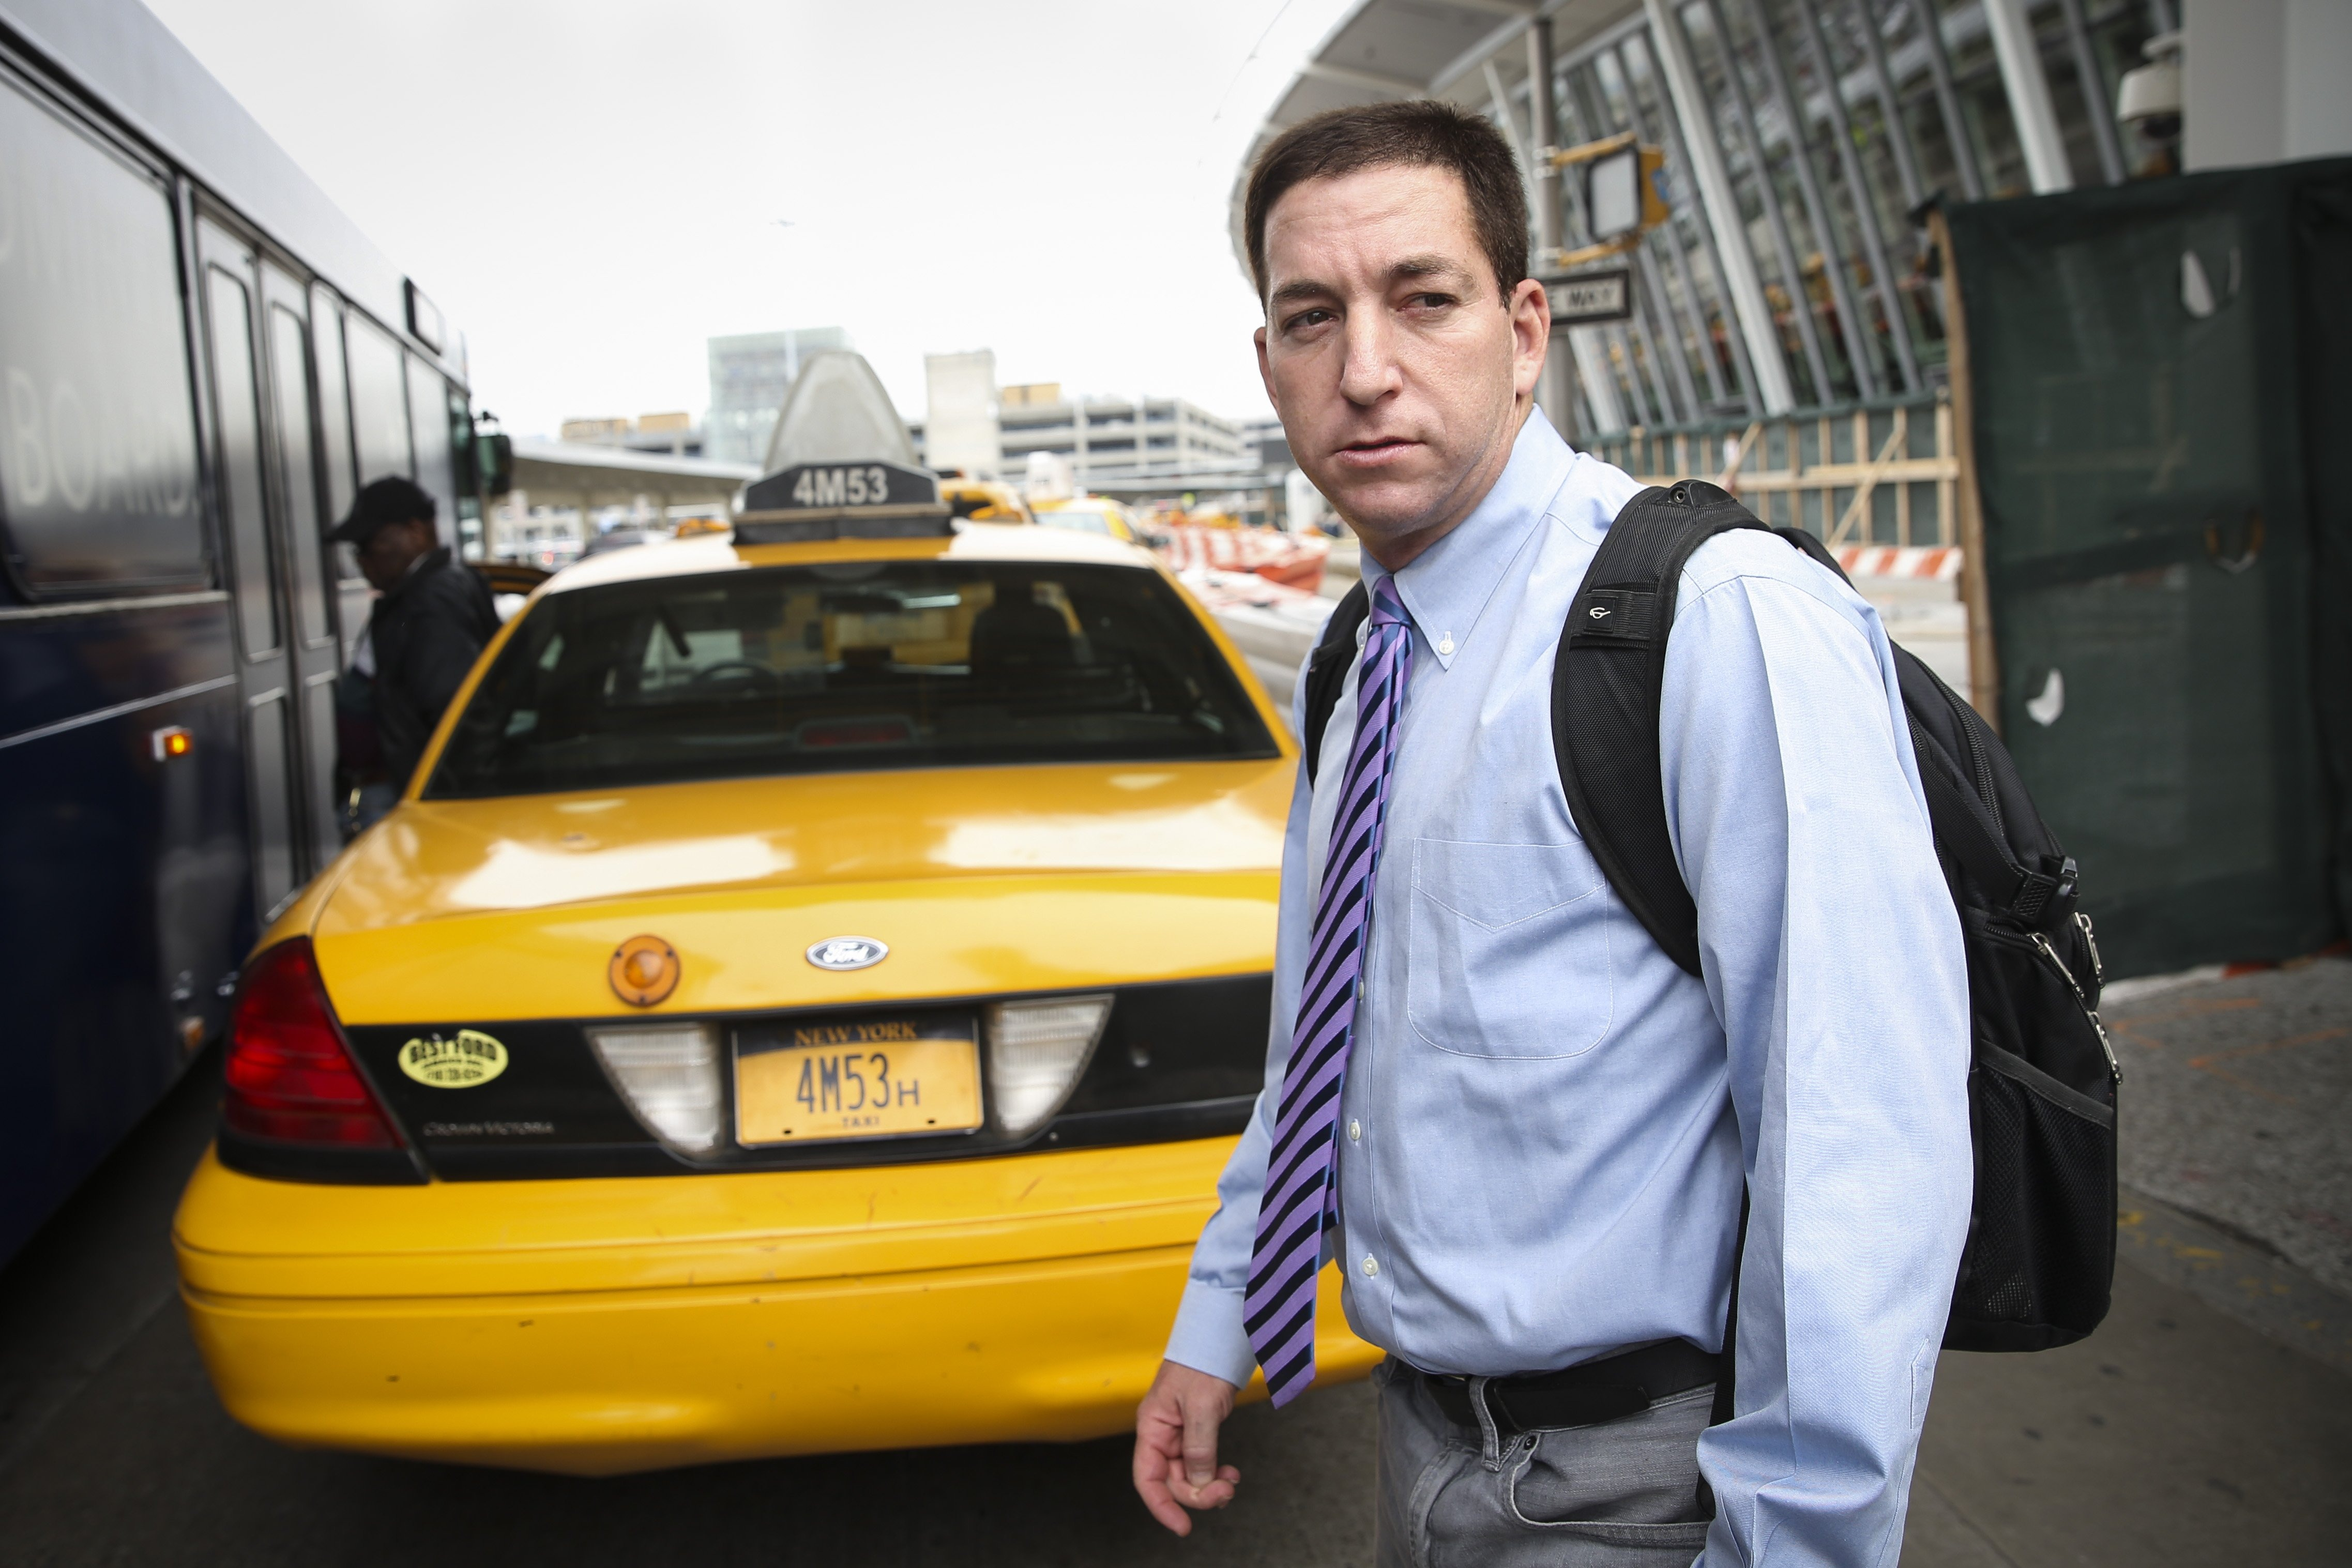 Glenn Greenwald arrives at John F. Kennedy International Airport in New York, April 11, 2014.